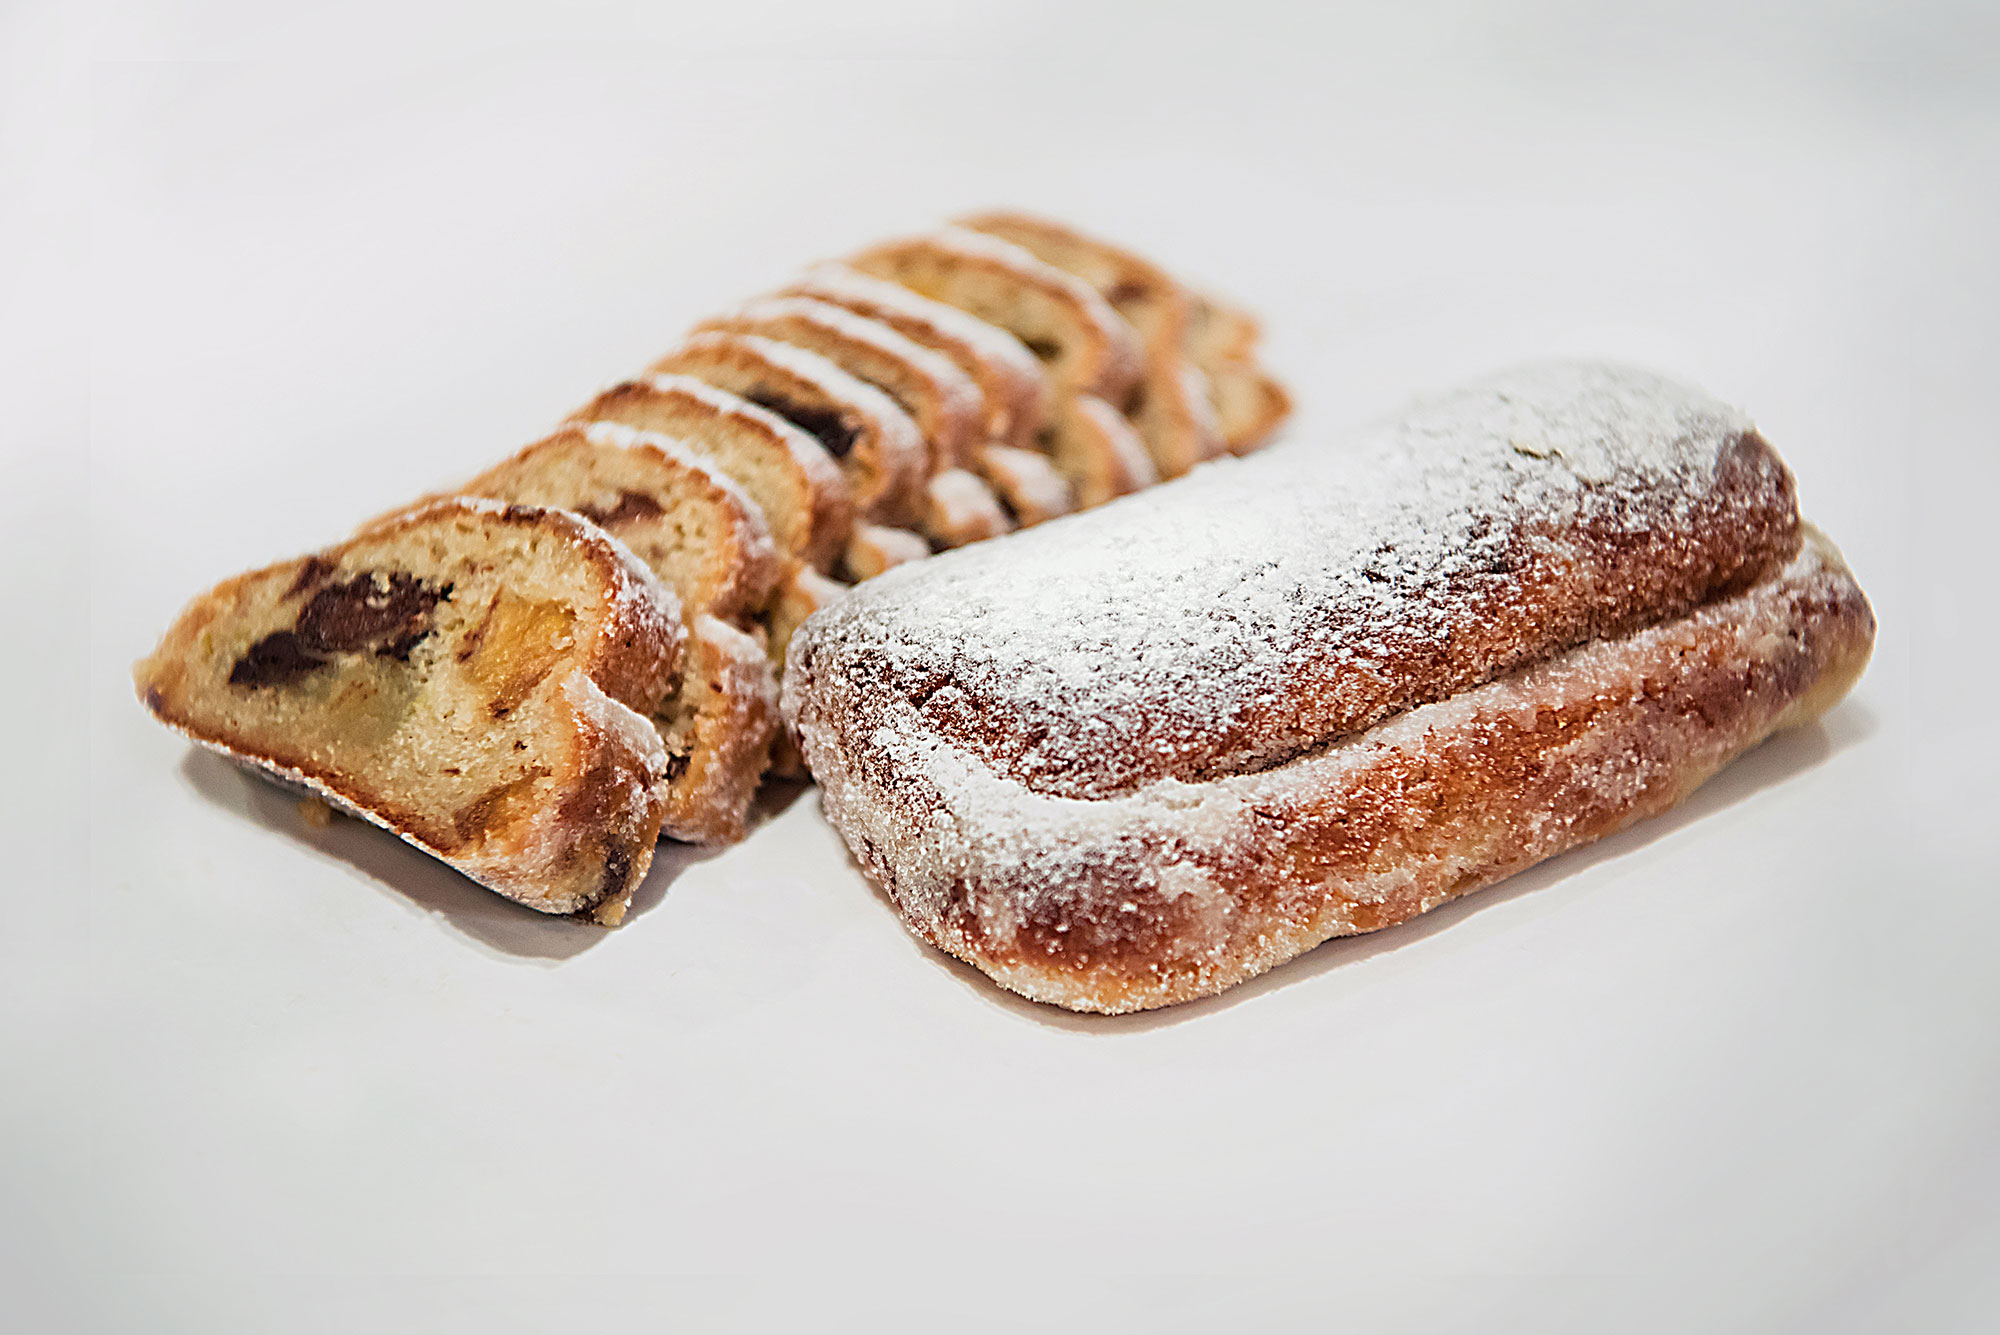 Delicious Xmas Stollen Bread - Awesome treat!